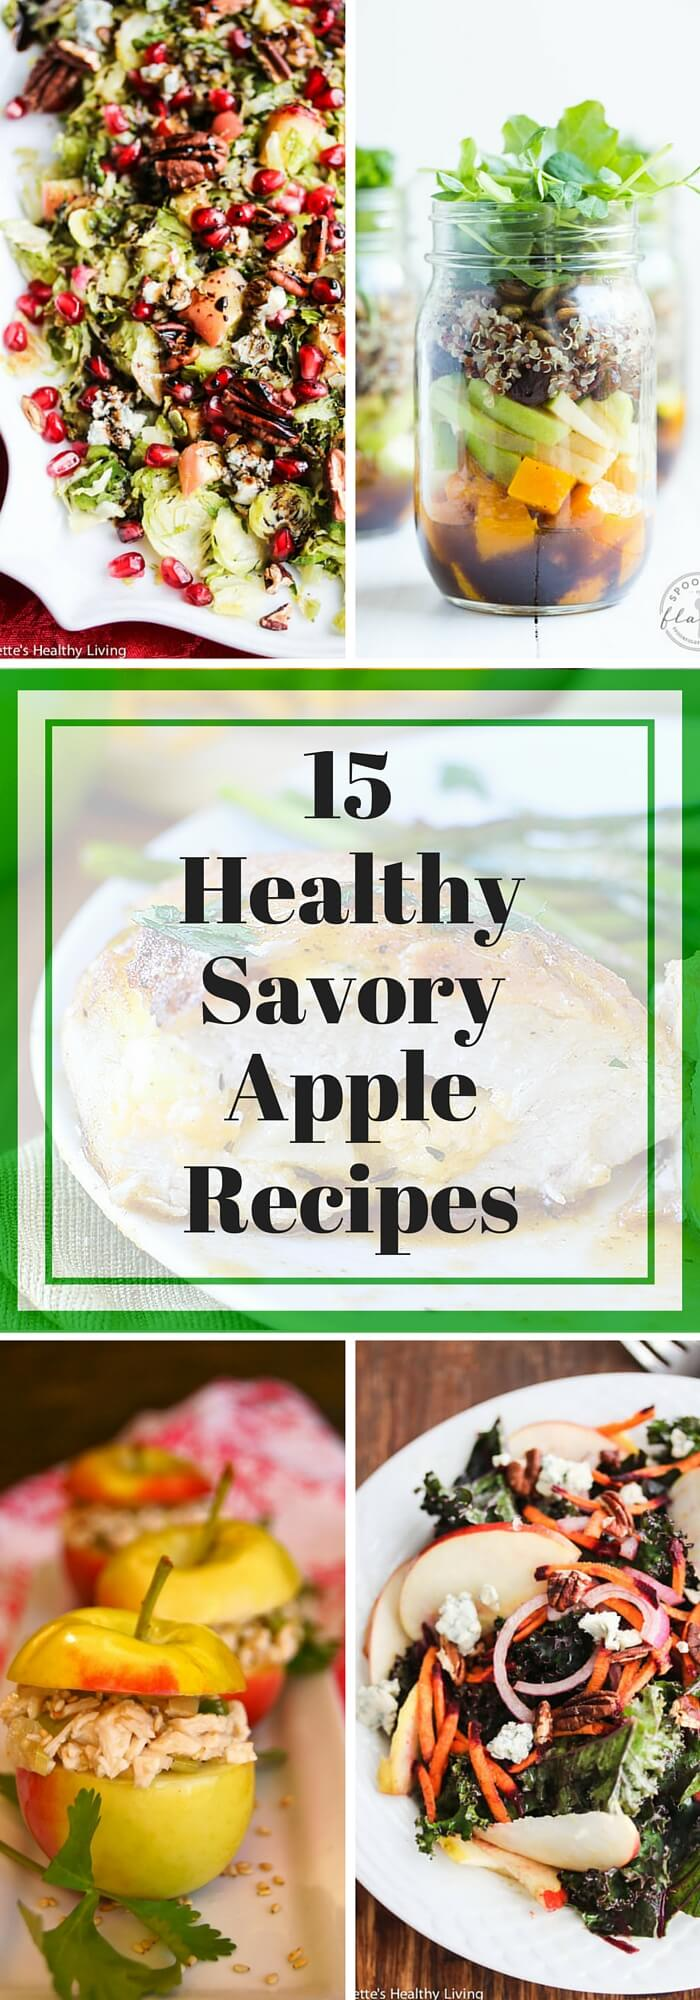 15 Healthy Savory Apple Recipes Jeanette S Healthy Living